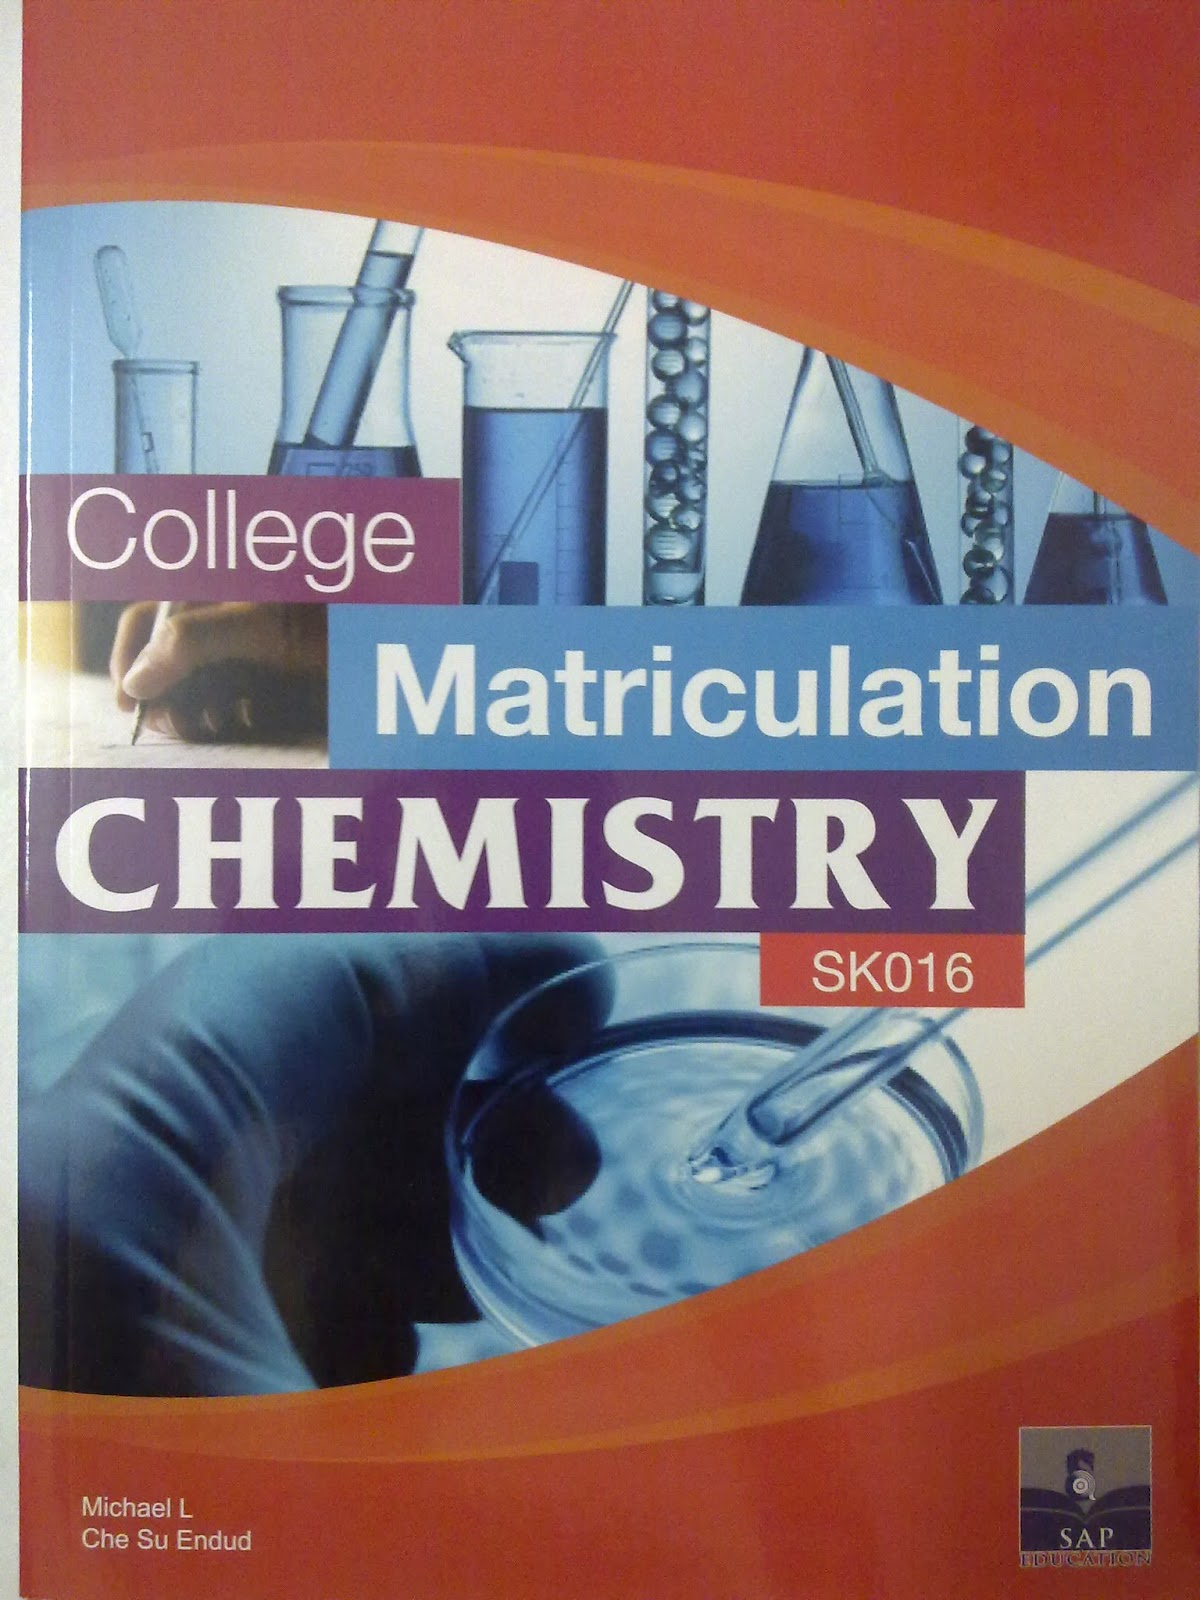 lookchemistry college matriculation chemistry sk016 this book contains simple clear and concise explanations plus comprehensive problem exercises at the end of each